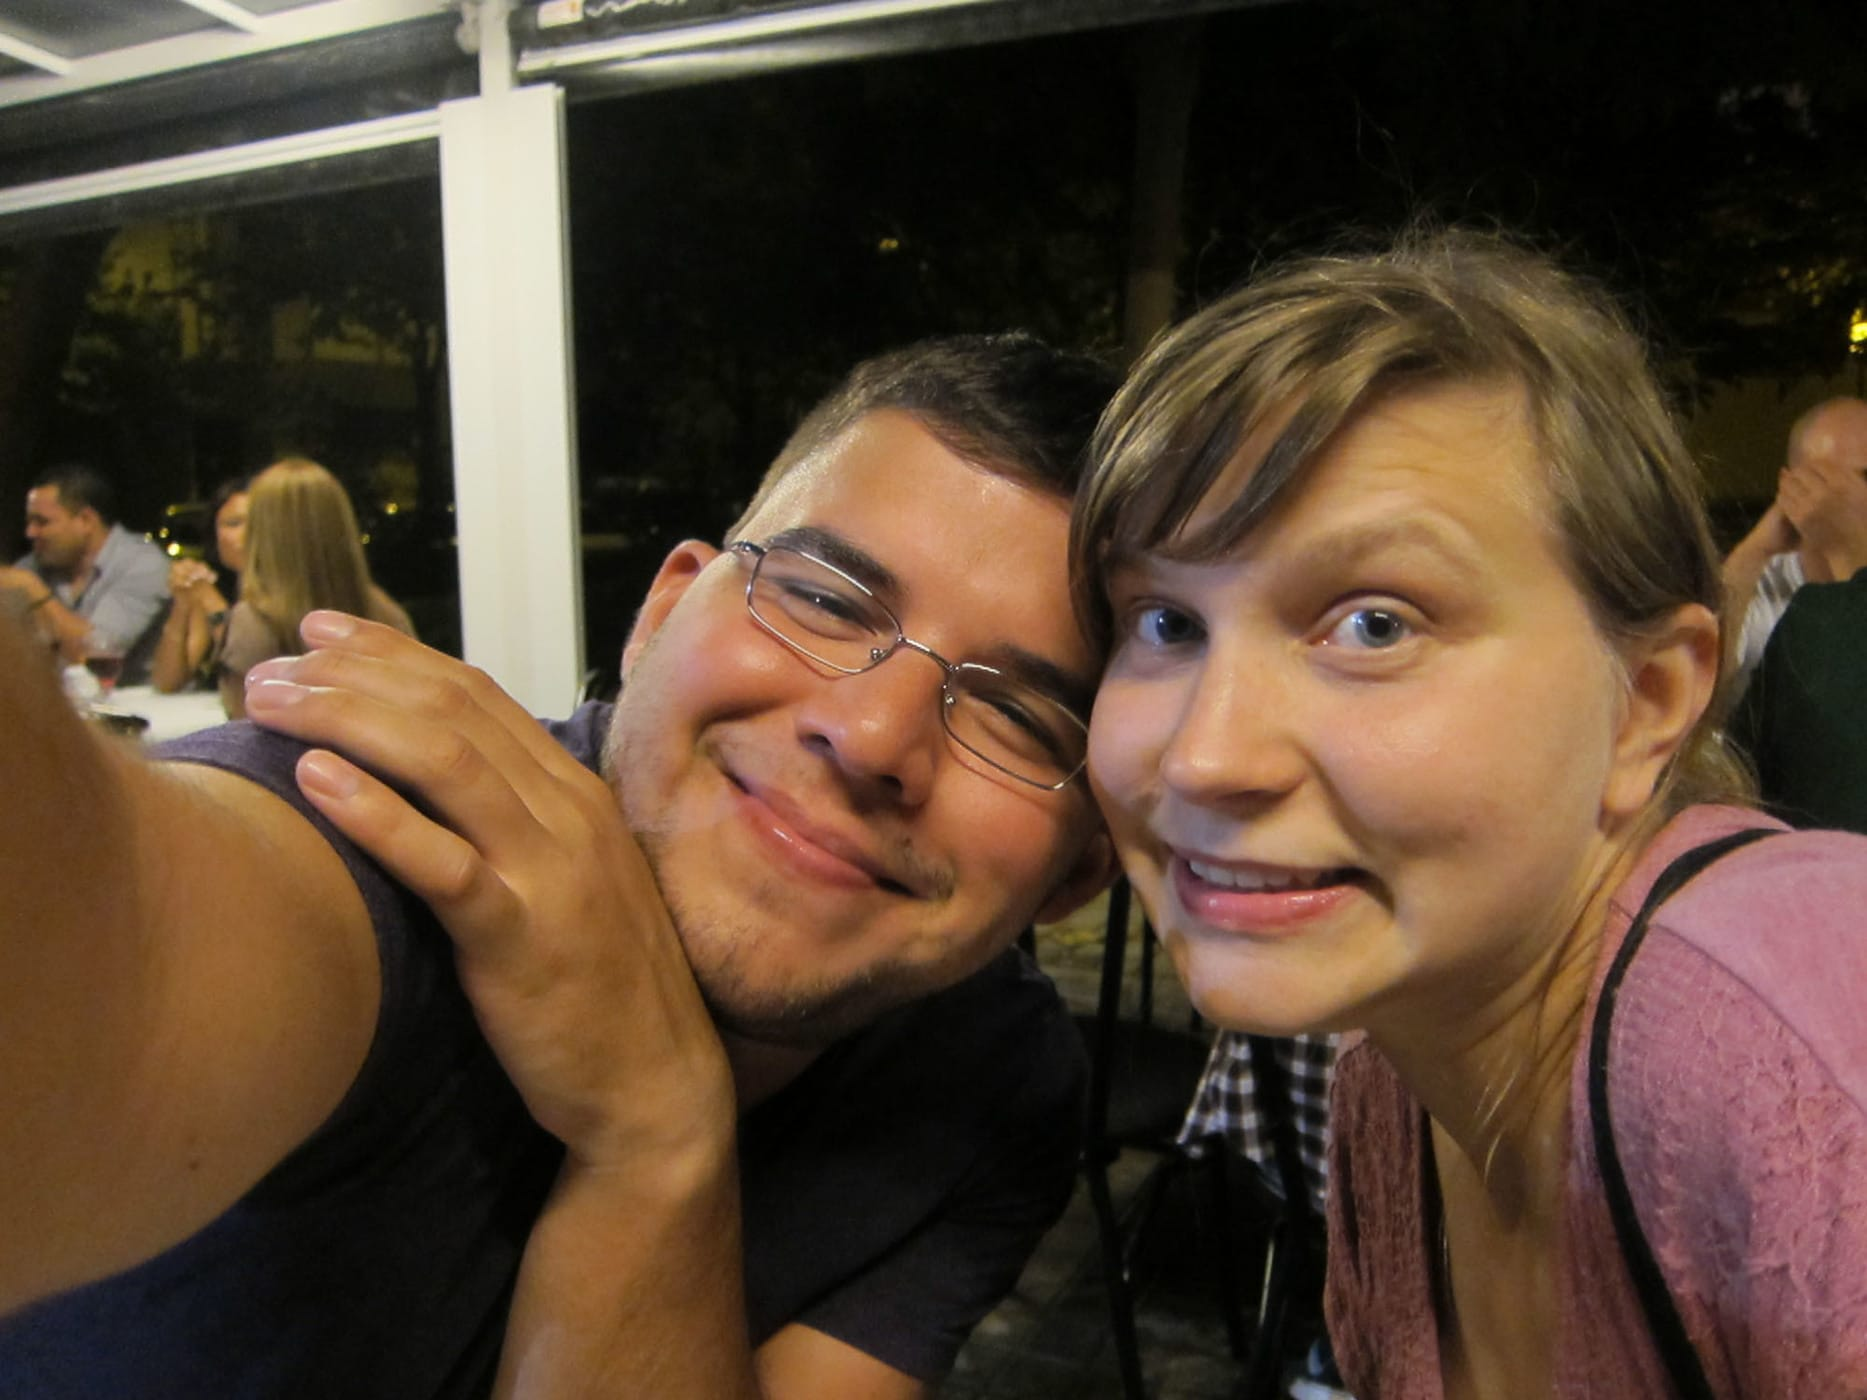 Me and Jaime in Valencia, Spain